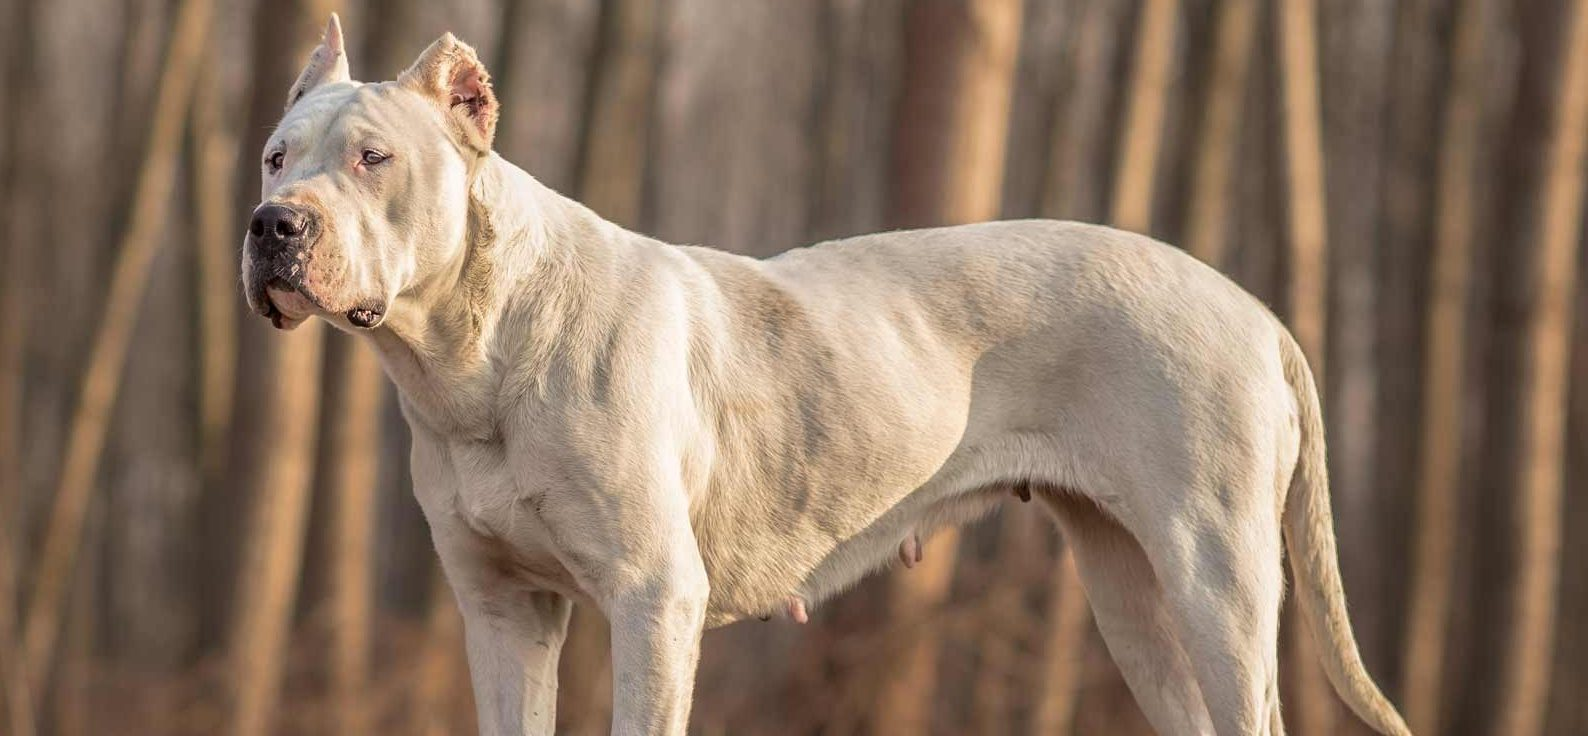 Dogo Argentino Puppies for Sale - Dogo Argentino Breed Info